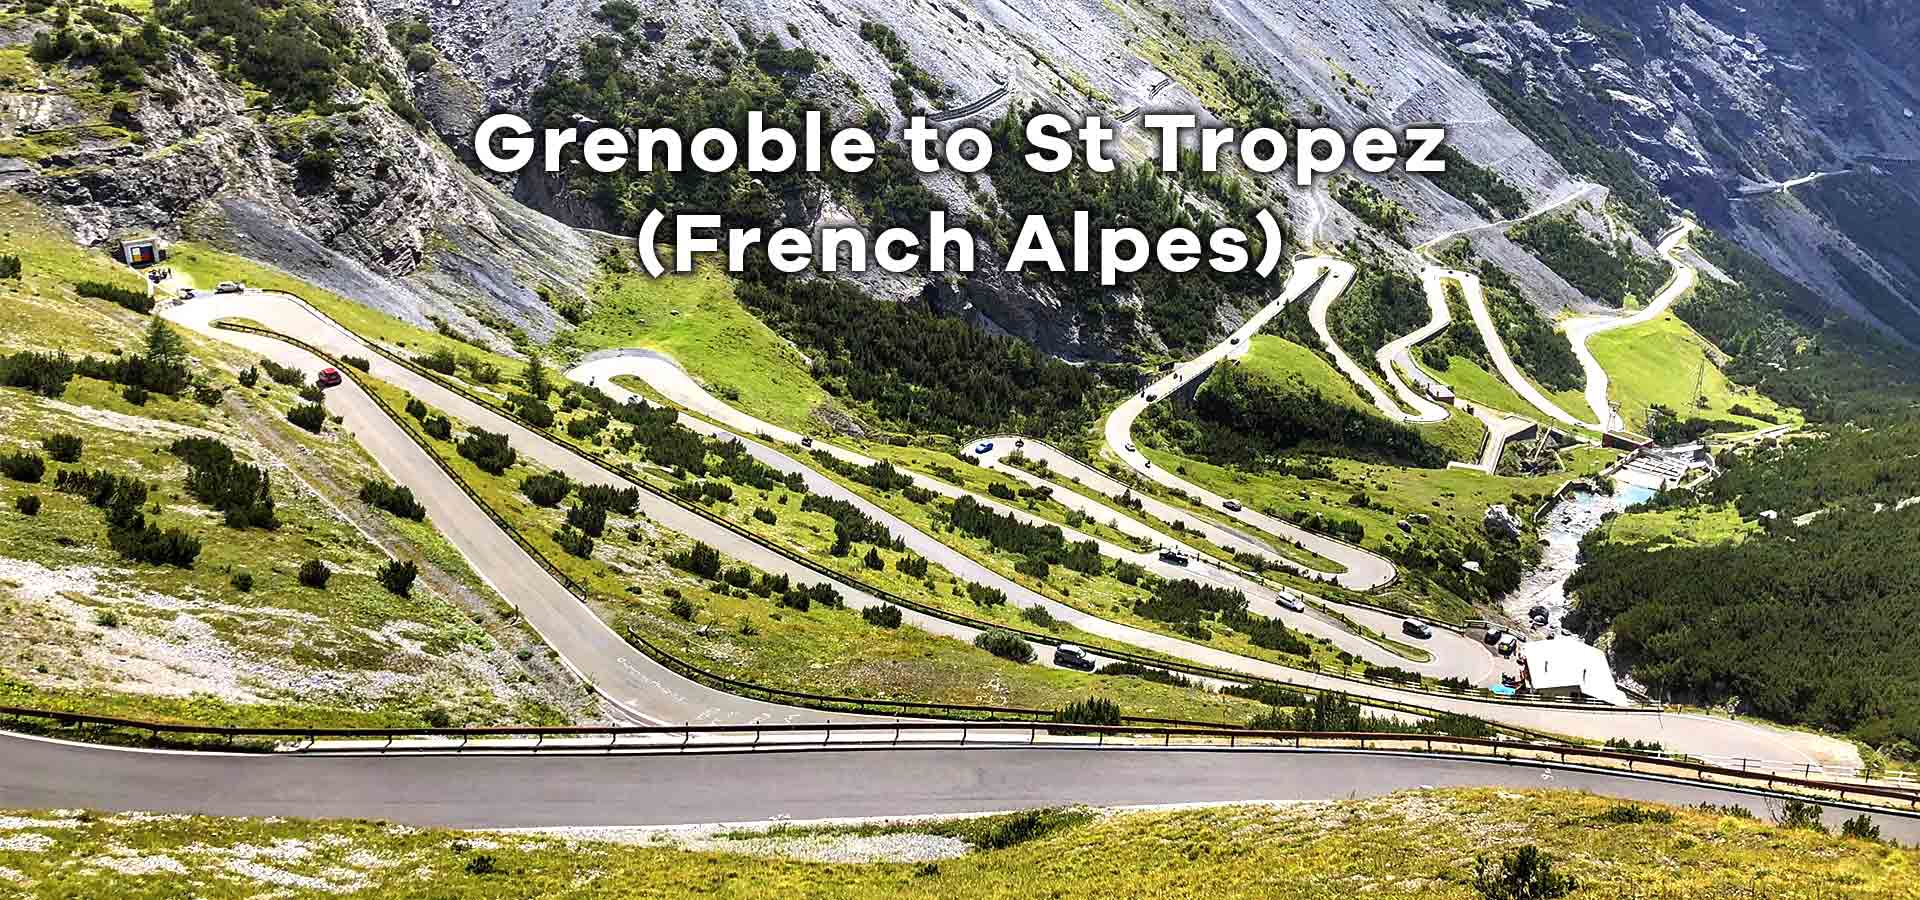 French Alps Cycling Tour, French Alpes Cycling Tour